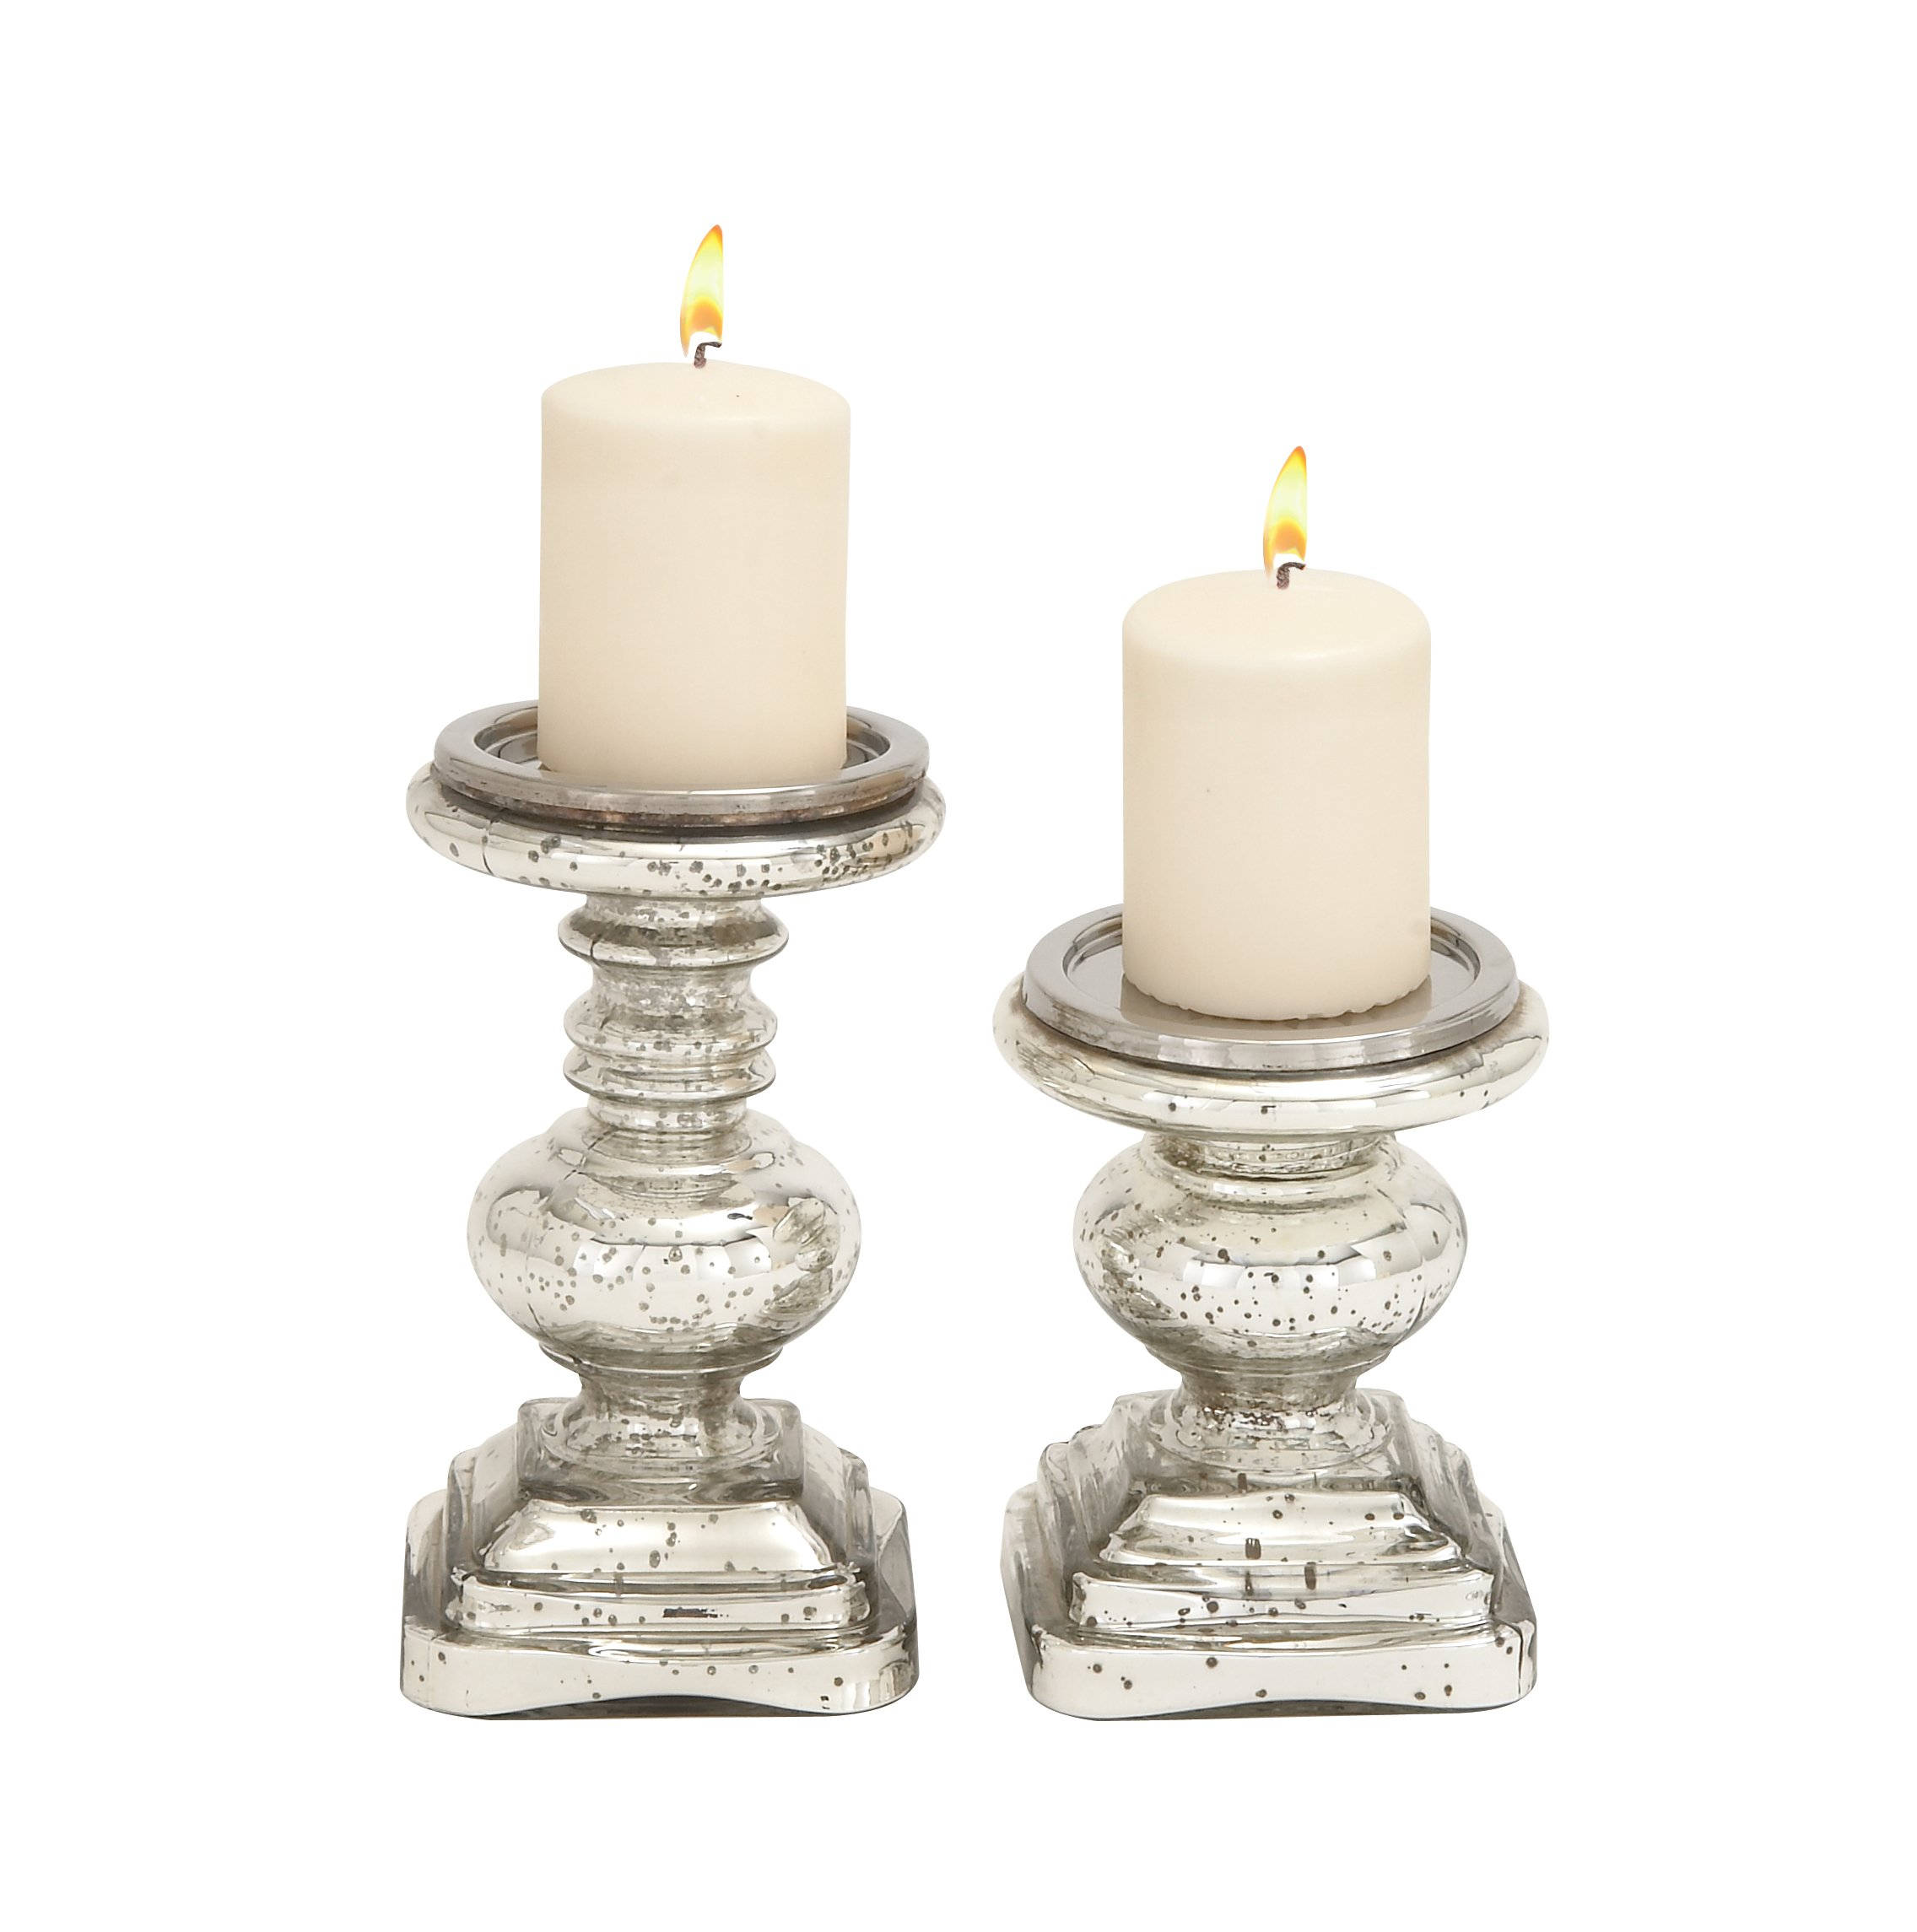 Deco 79 28883 Glass Candleholder Set of 2 by Deco 79 (Image #1)